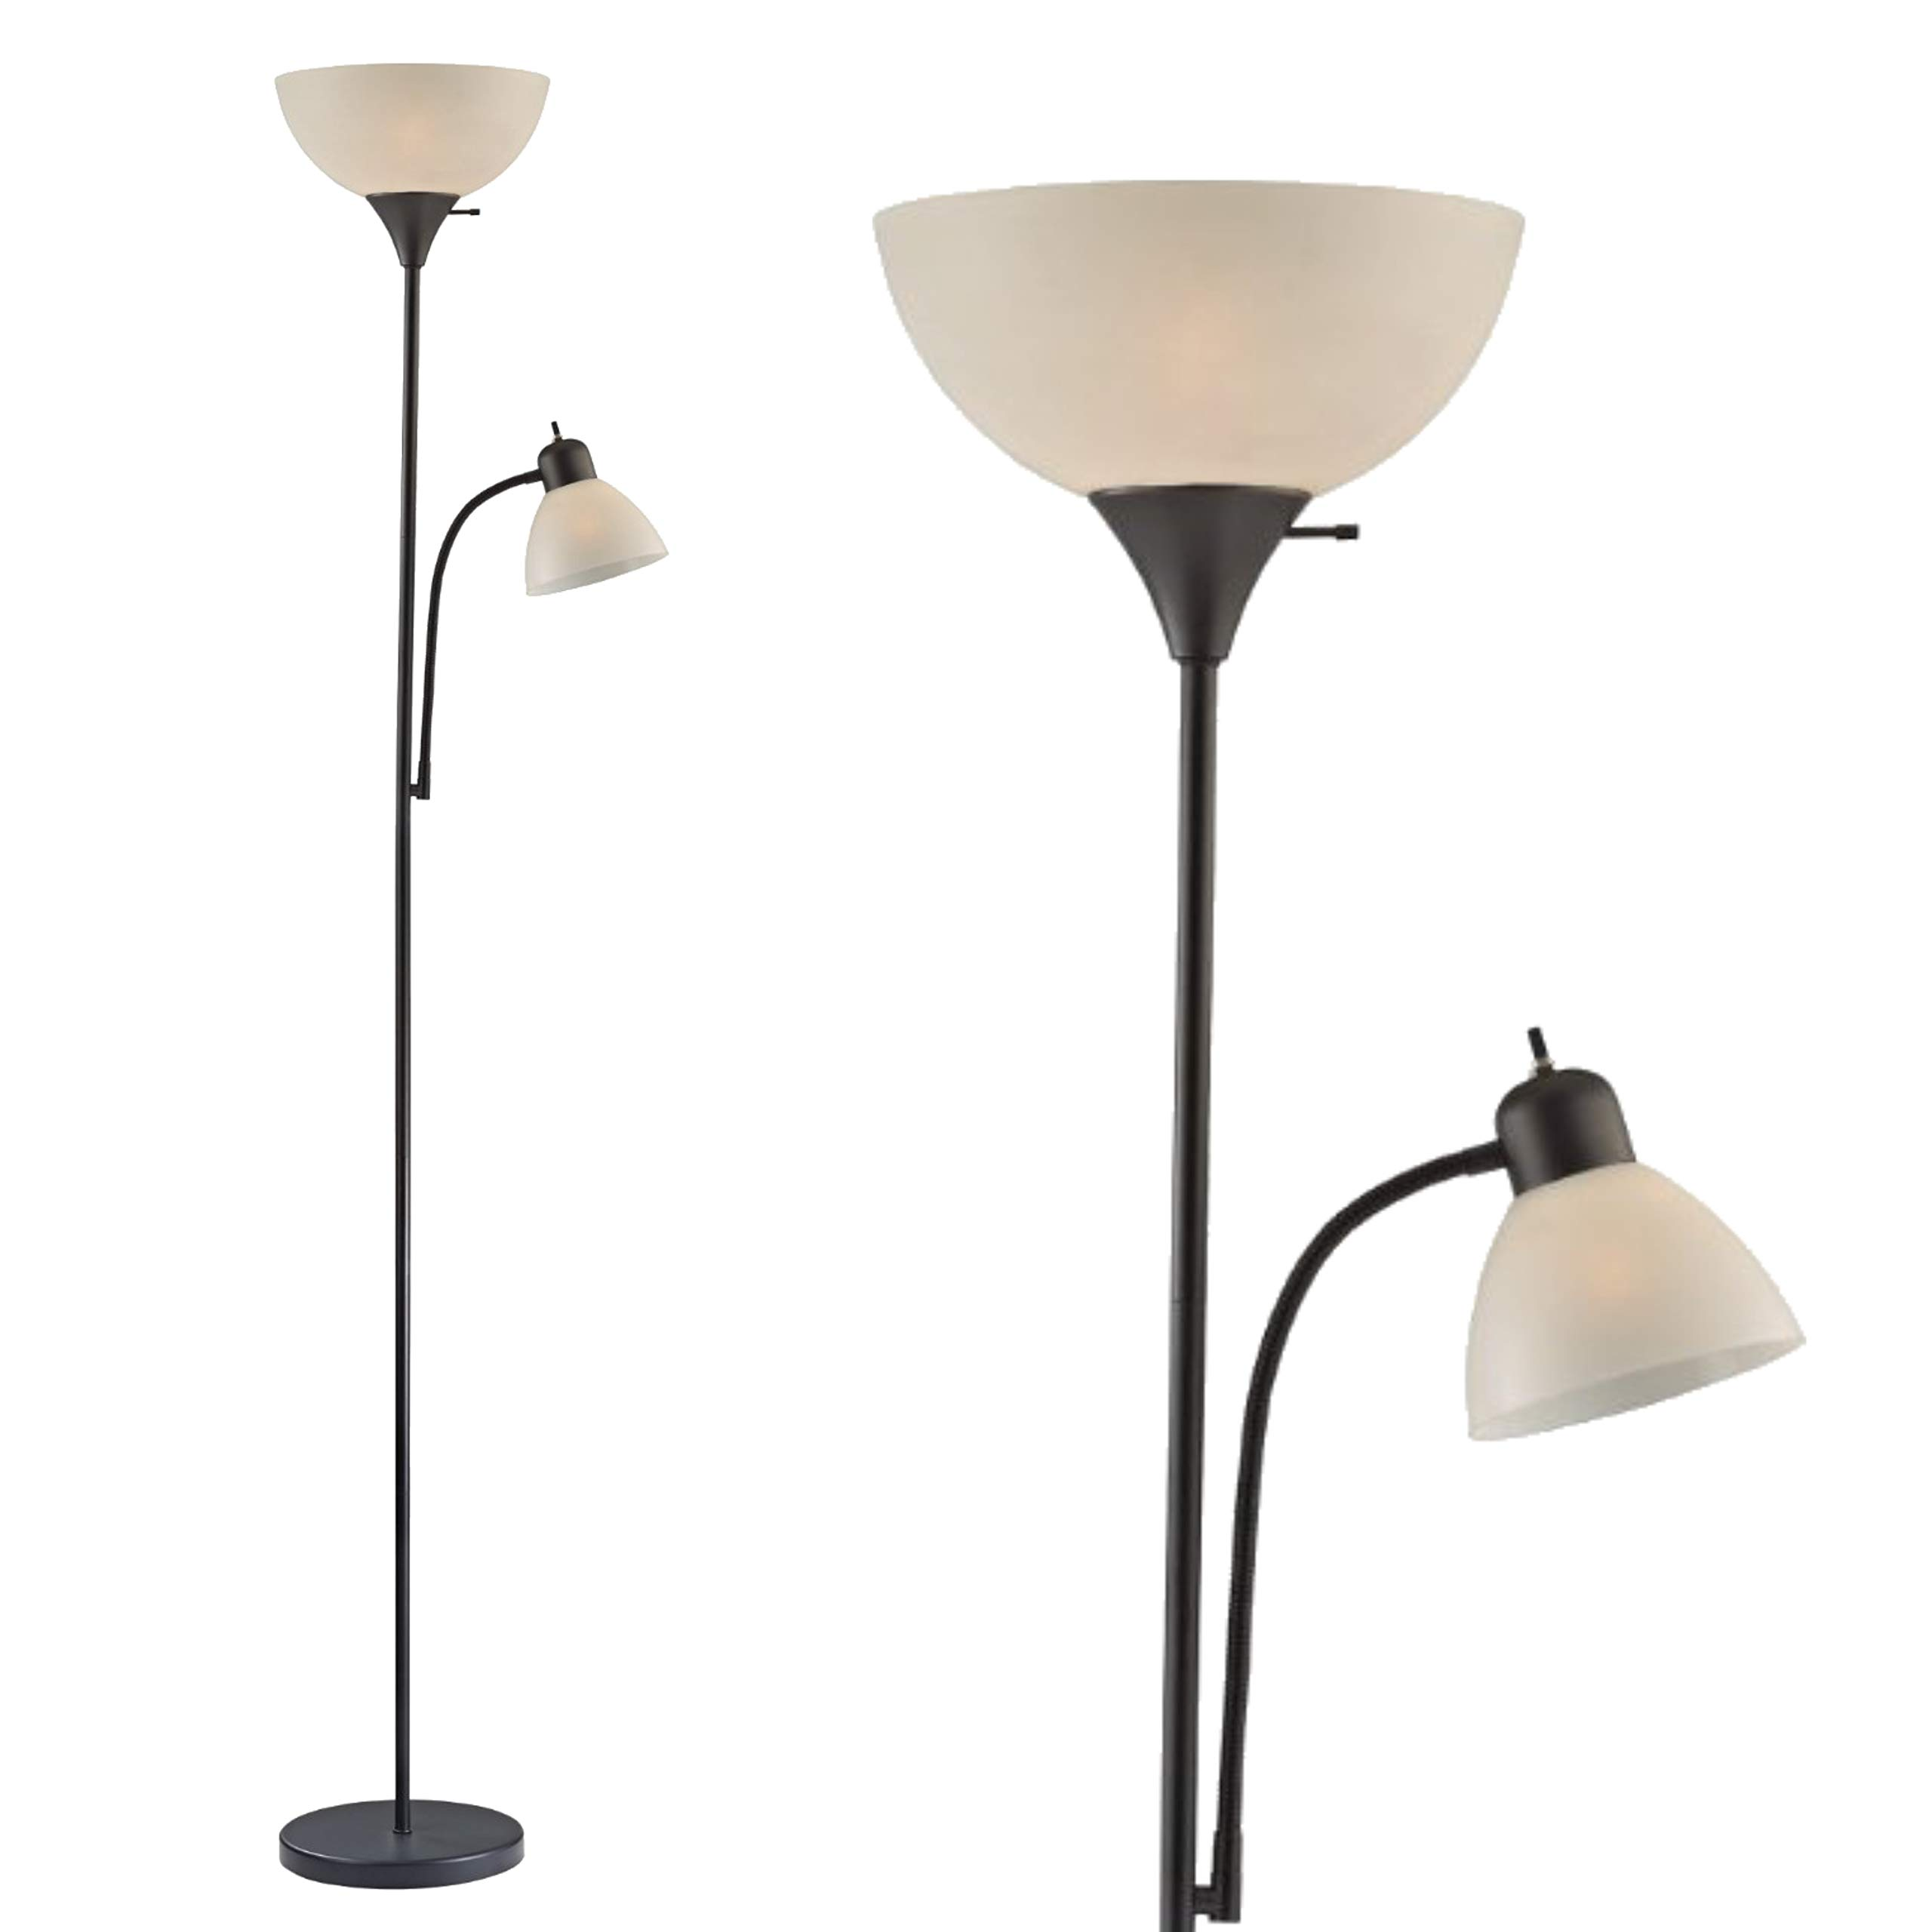 Floor Lamp By Light Accents - Susan Modern Standing Floor Lamp For Living Room/Office Lamp 72'' Tall - 150-watt With Side Reading Light - Torchiere (Black)